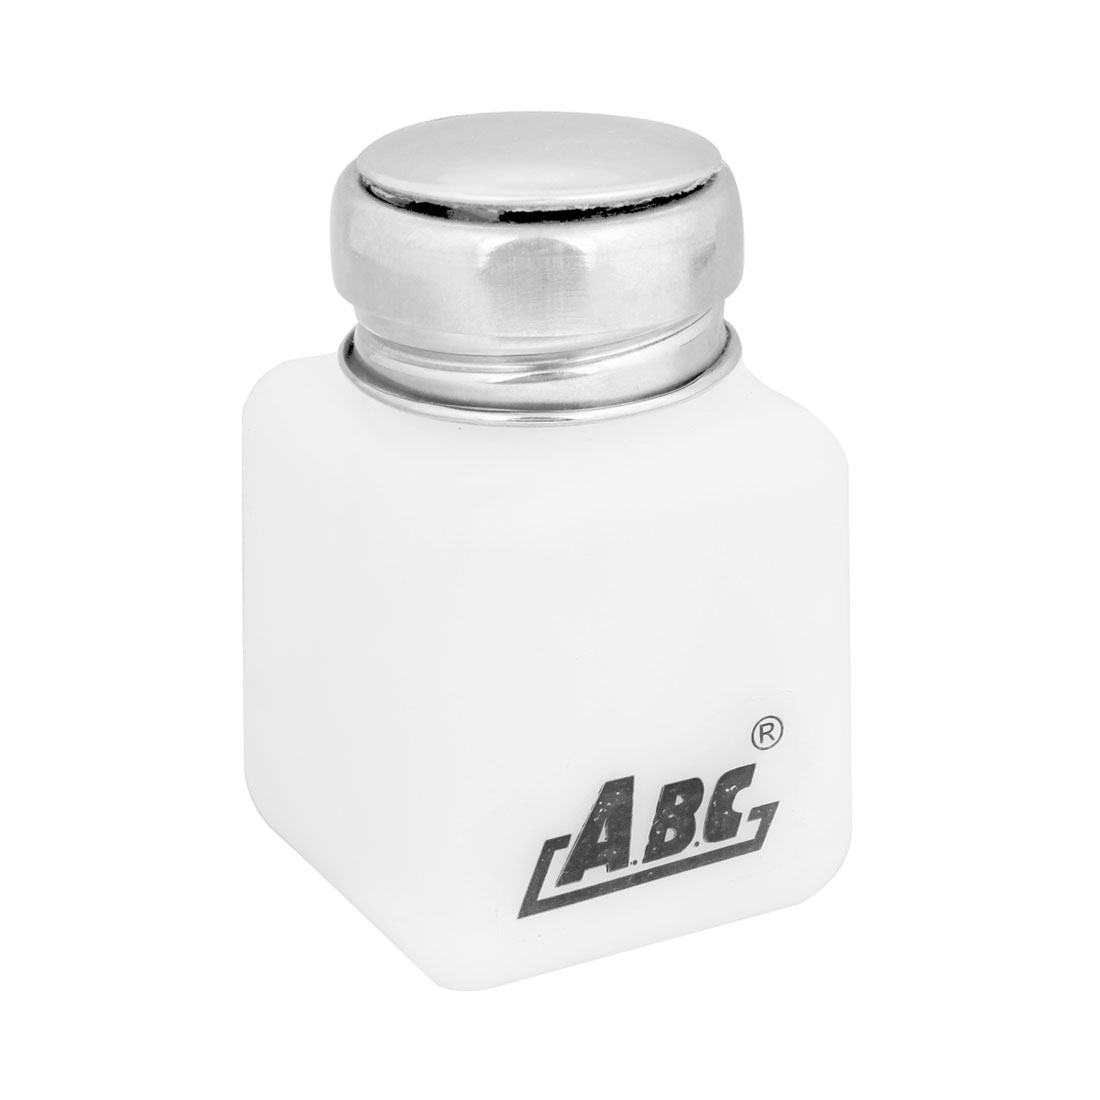 Silver Tone Metal Cap 120ml Plastic Liquid Container Alcohol Bottle White